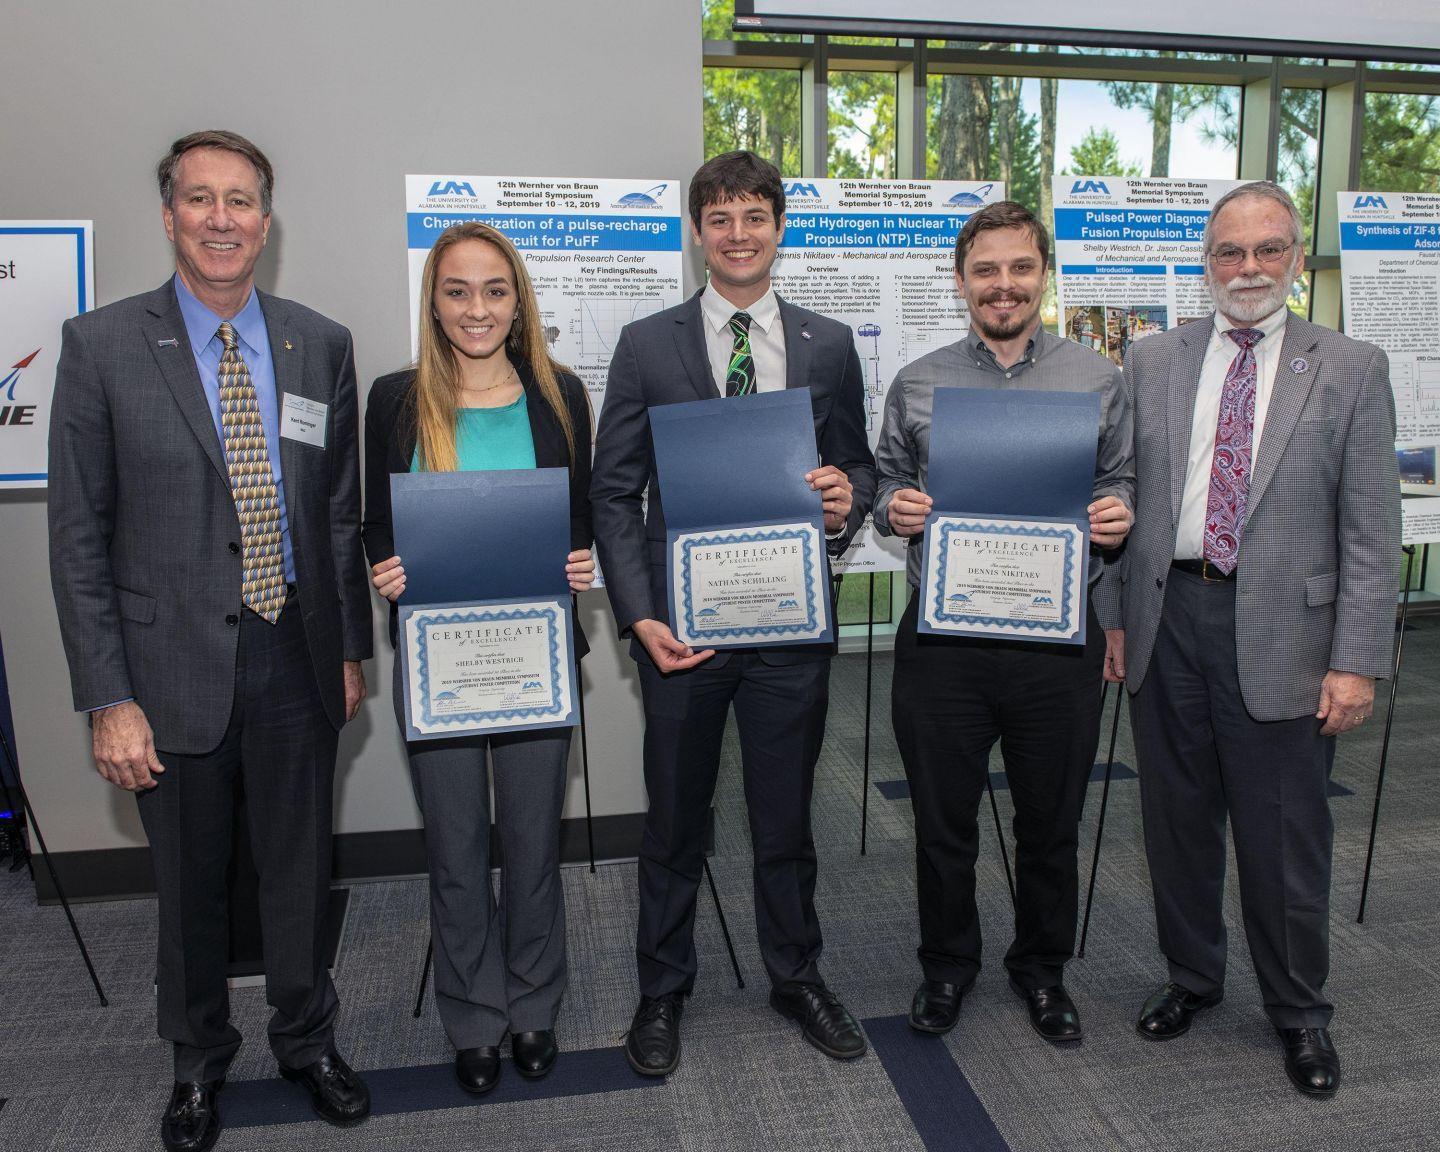 Engineering 2019 Poster Winners